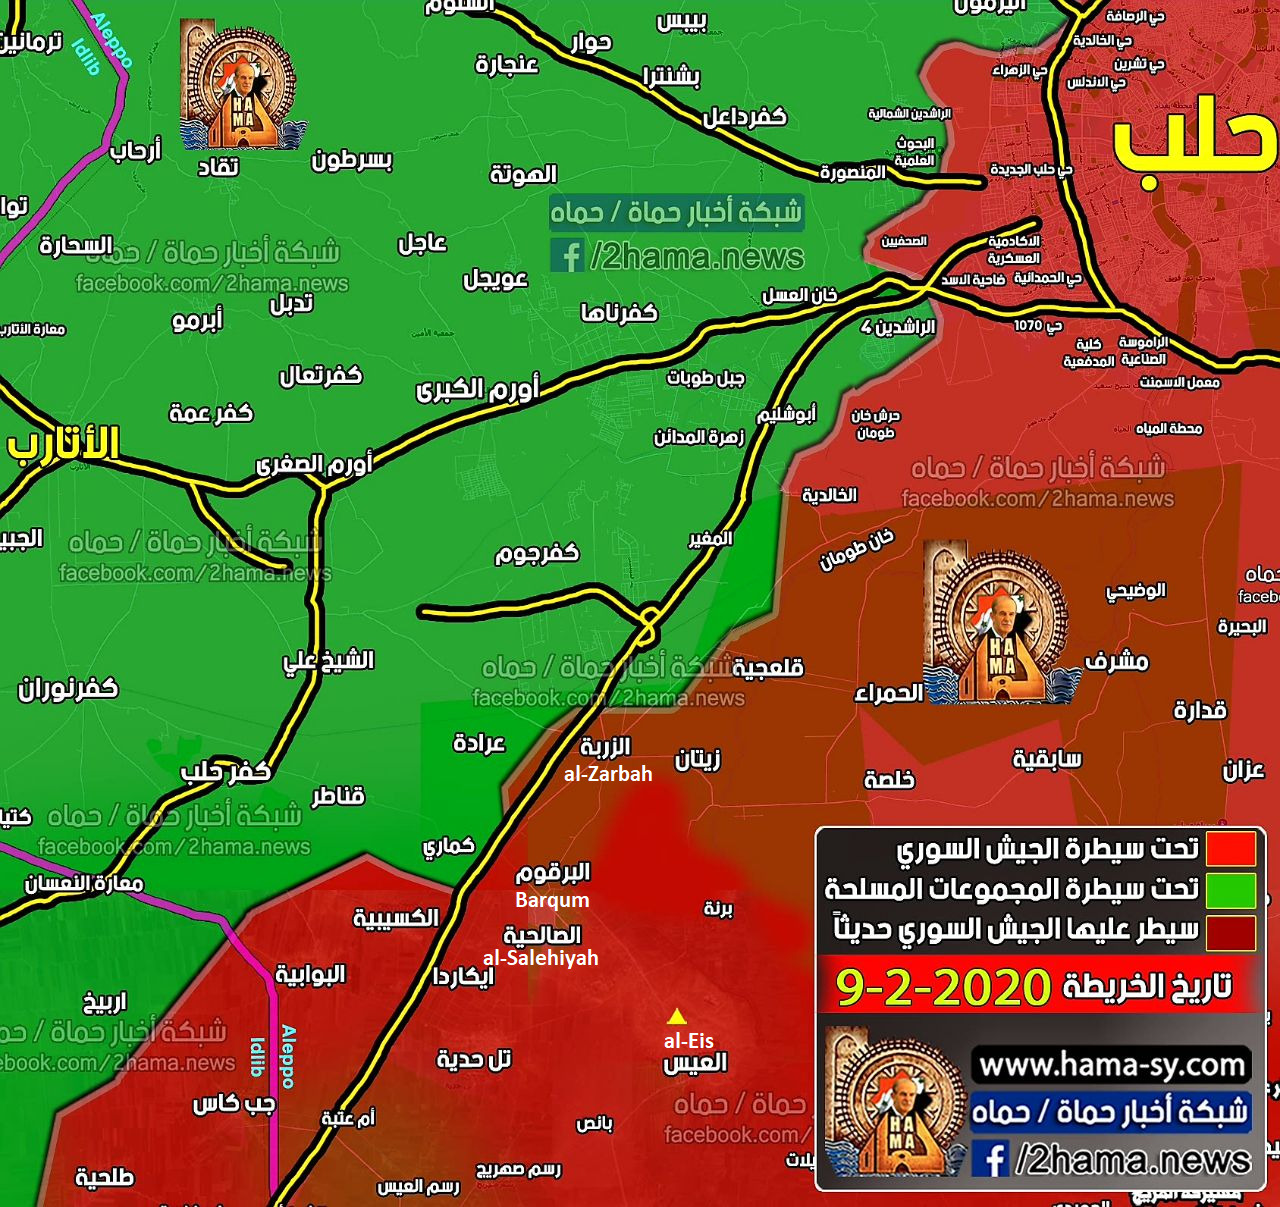 Syrian Army Captures Three Towns Along M5 Highway From HTS